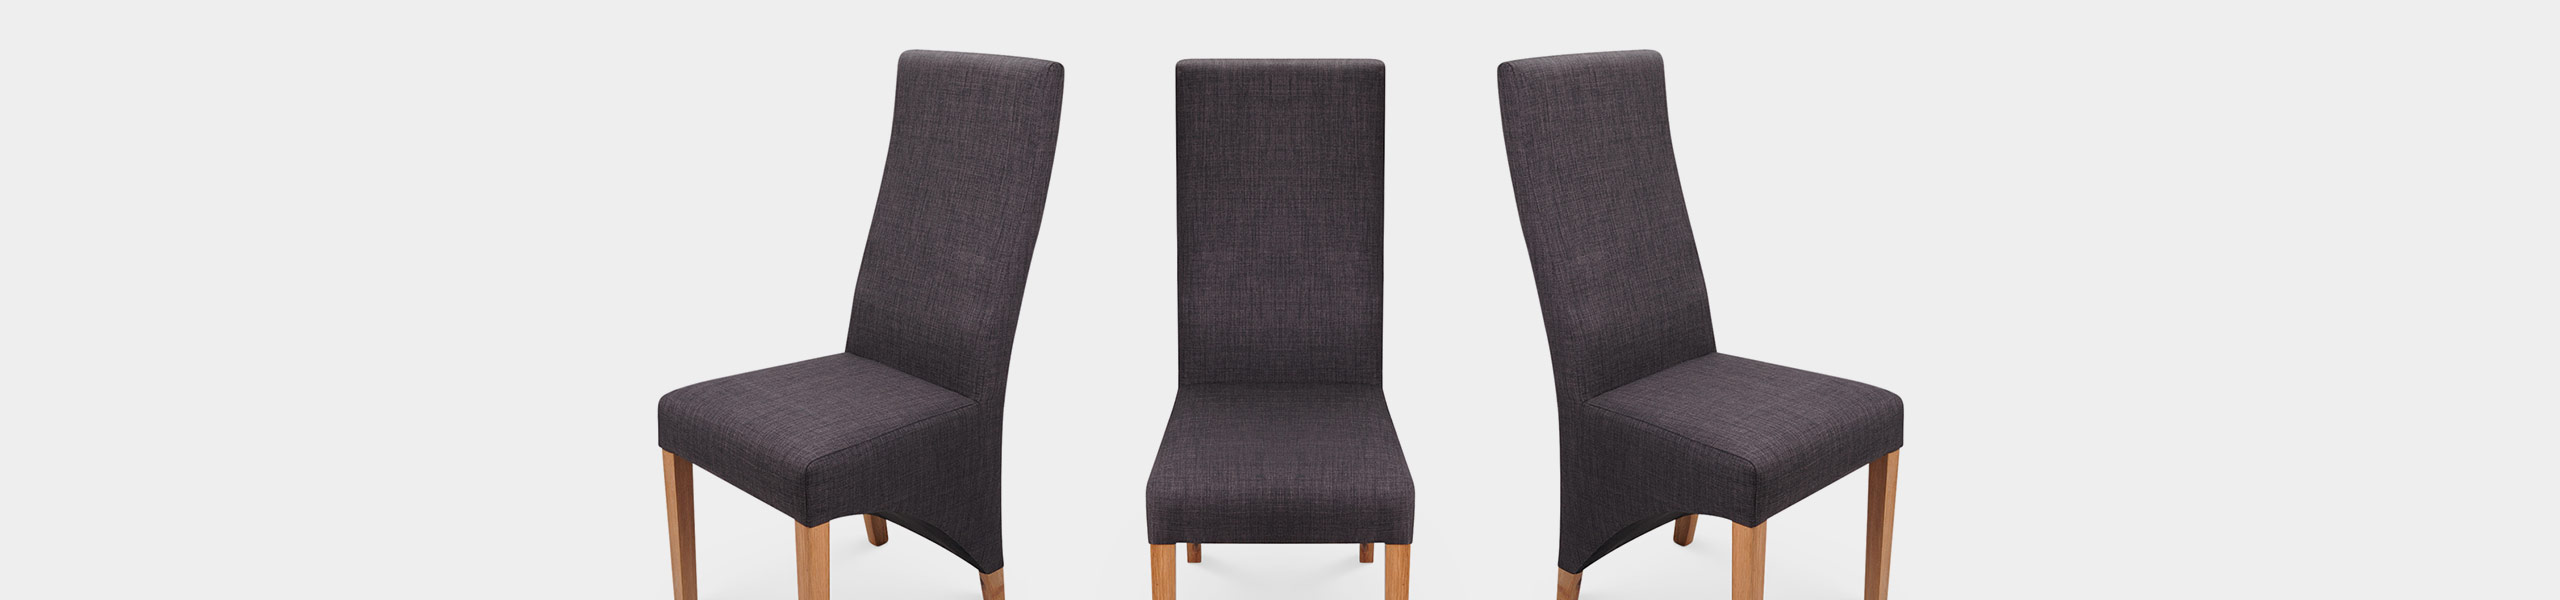 Baxter Dining Chair Grey Video Banner